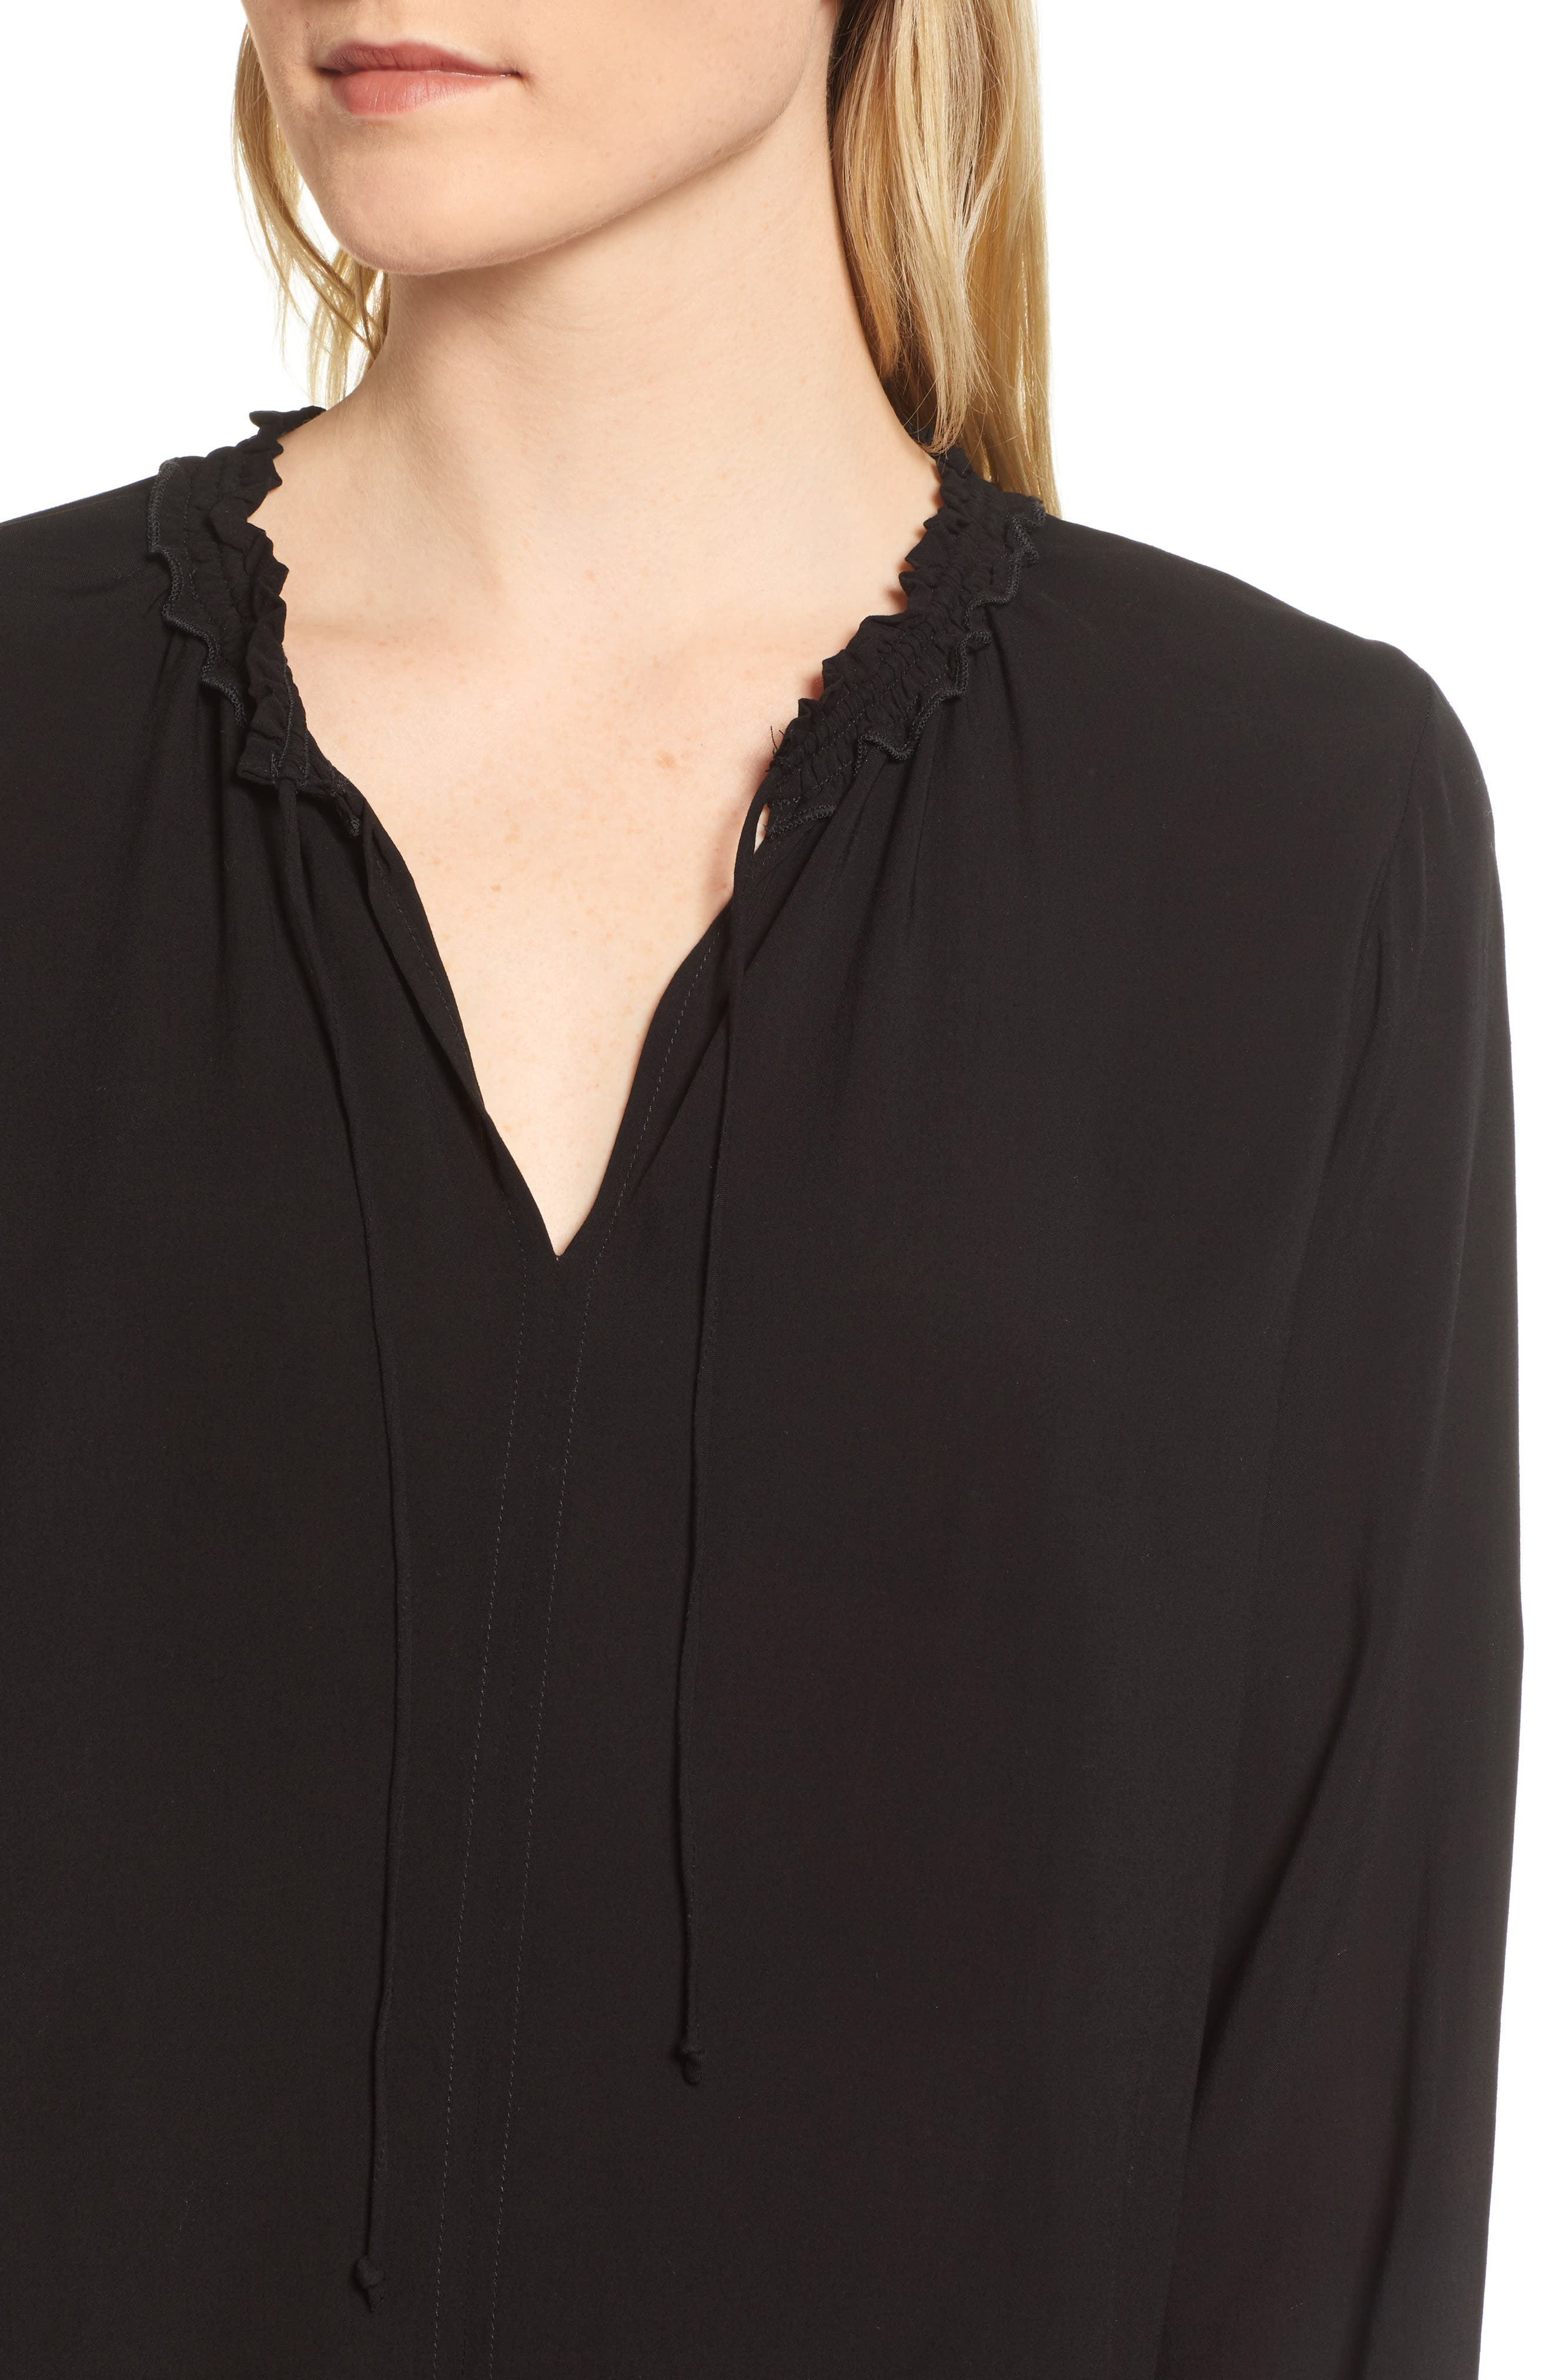 Ruffle Tie Neck Top,                             Alternate thumbnail 4, color,                             001